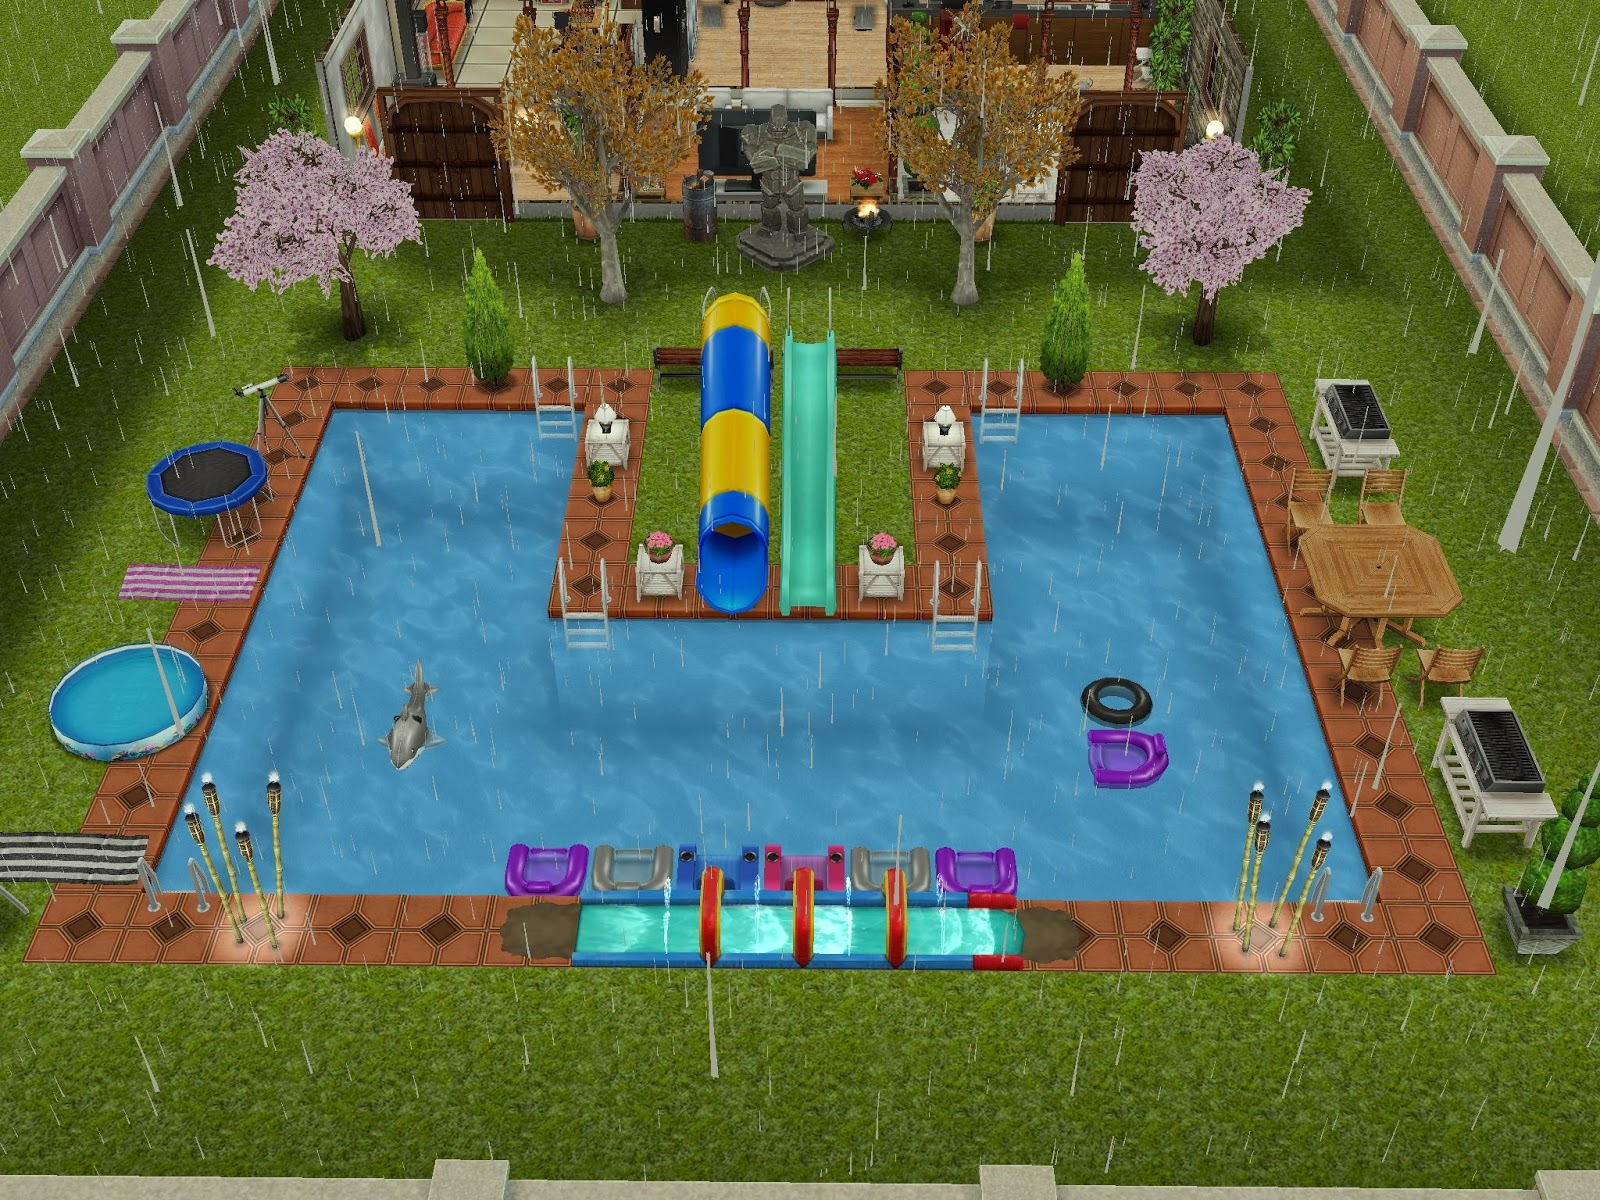 Sims freeplay pool ideas images for Pool design sims 4